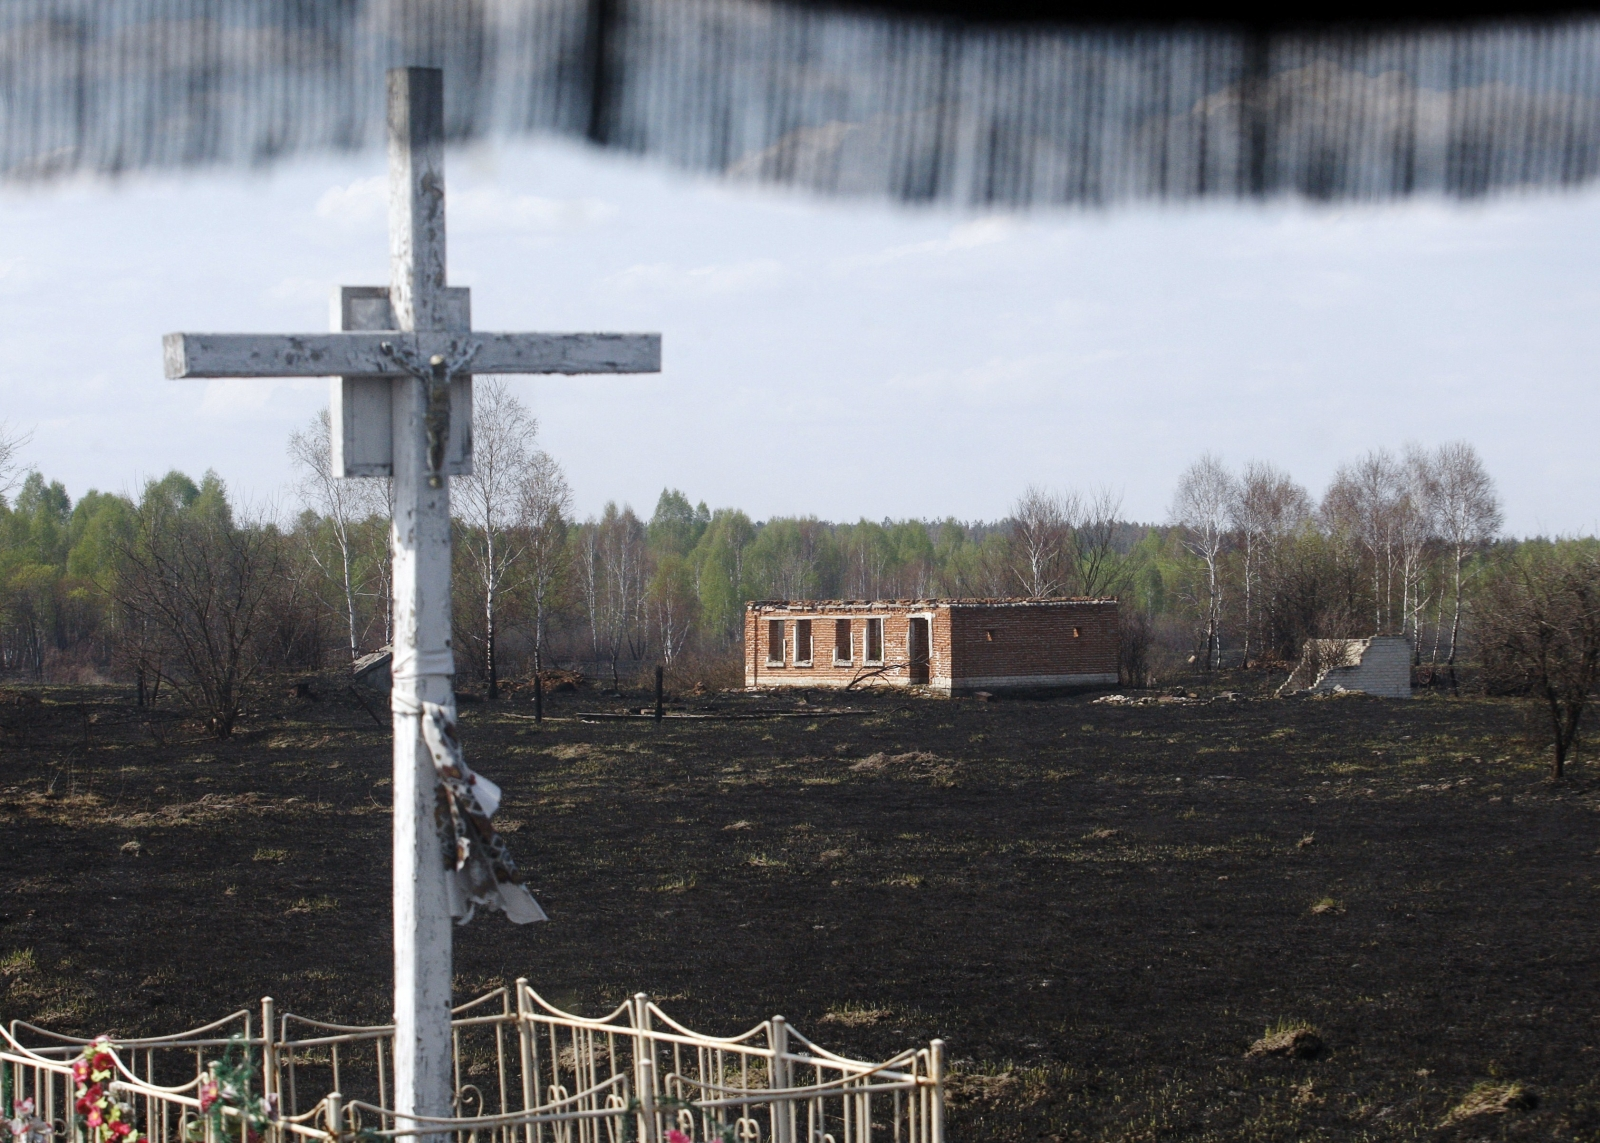 In May, a fire tore through the